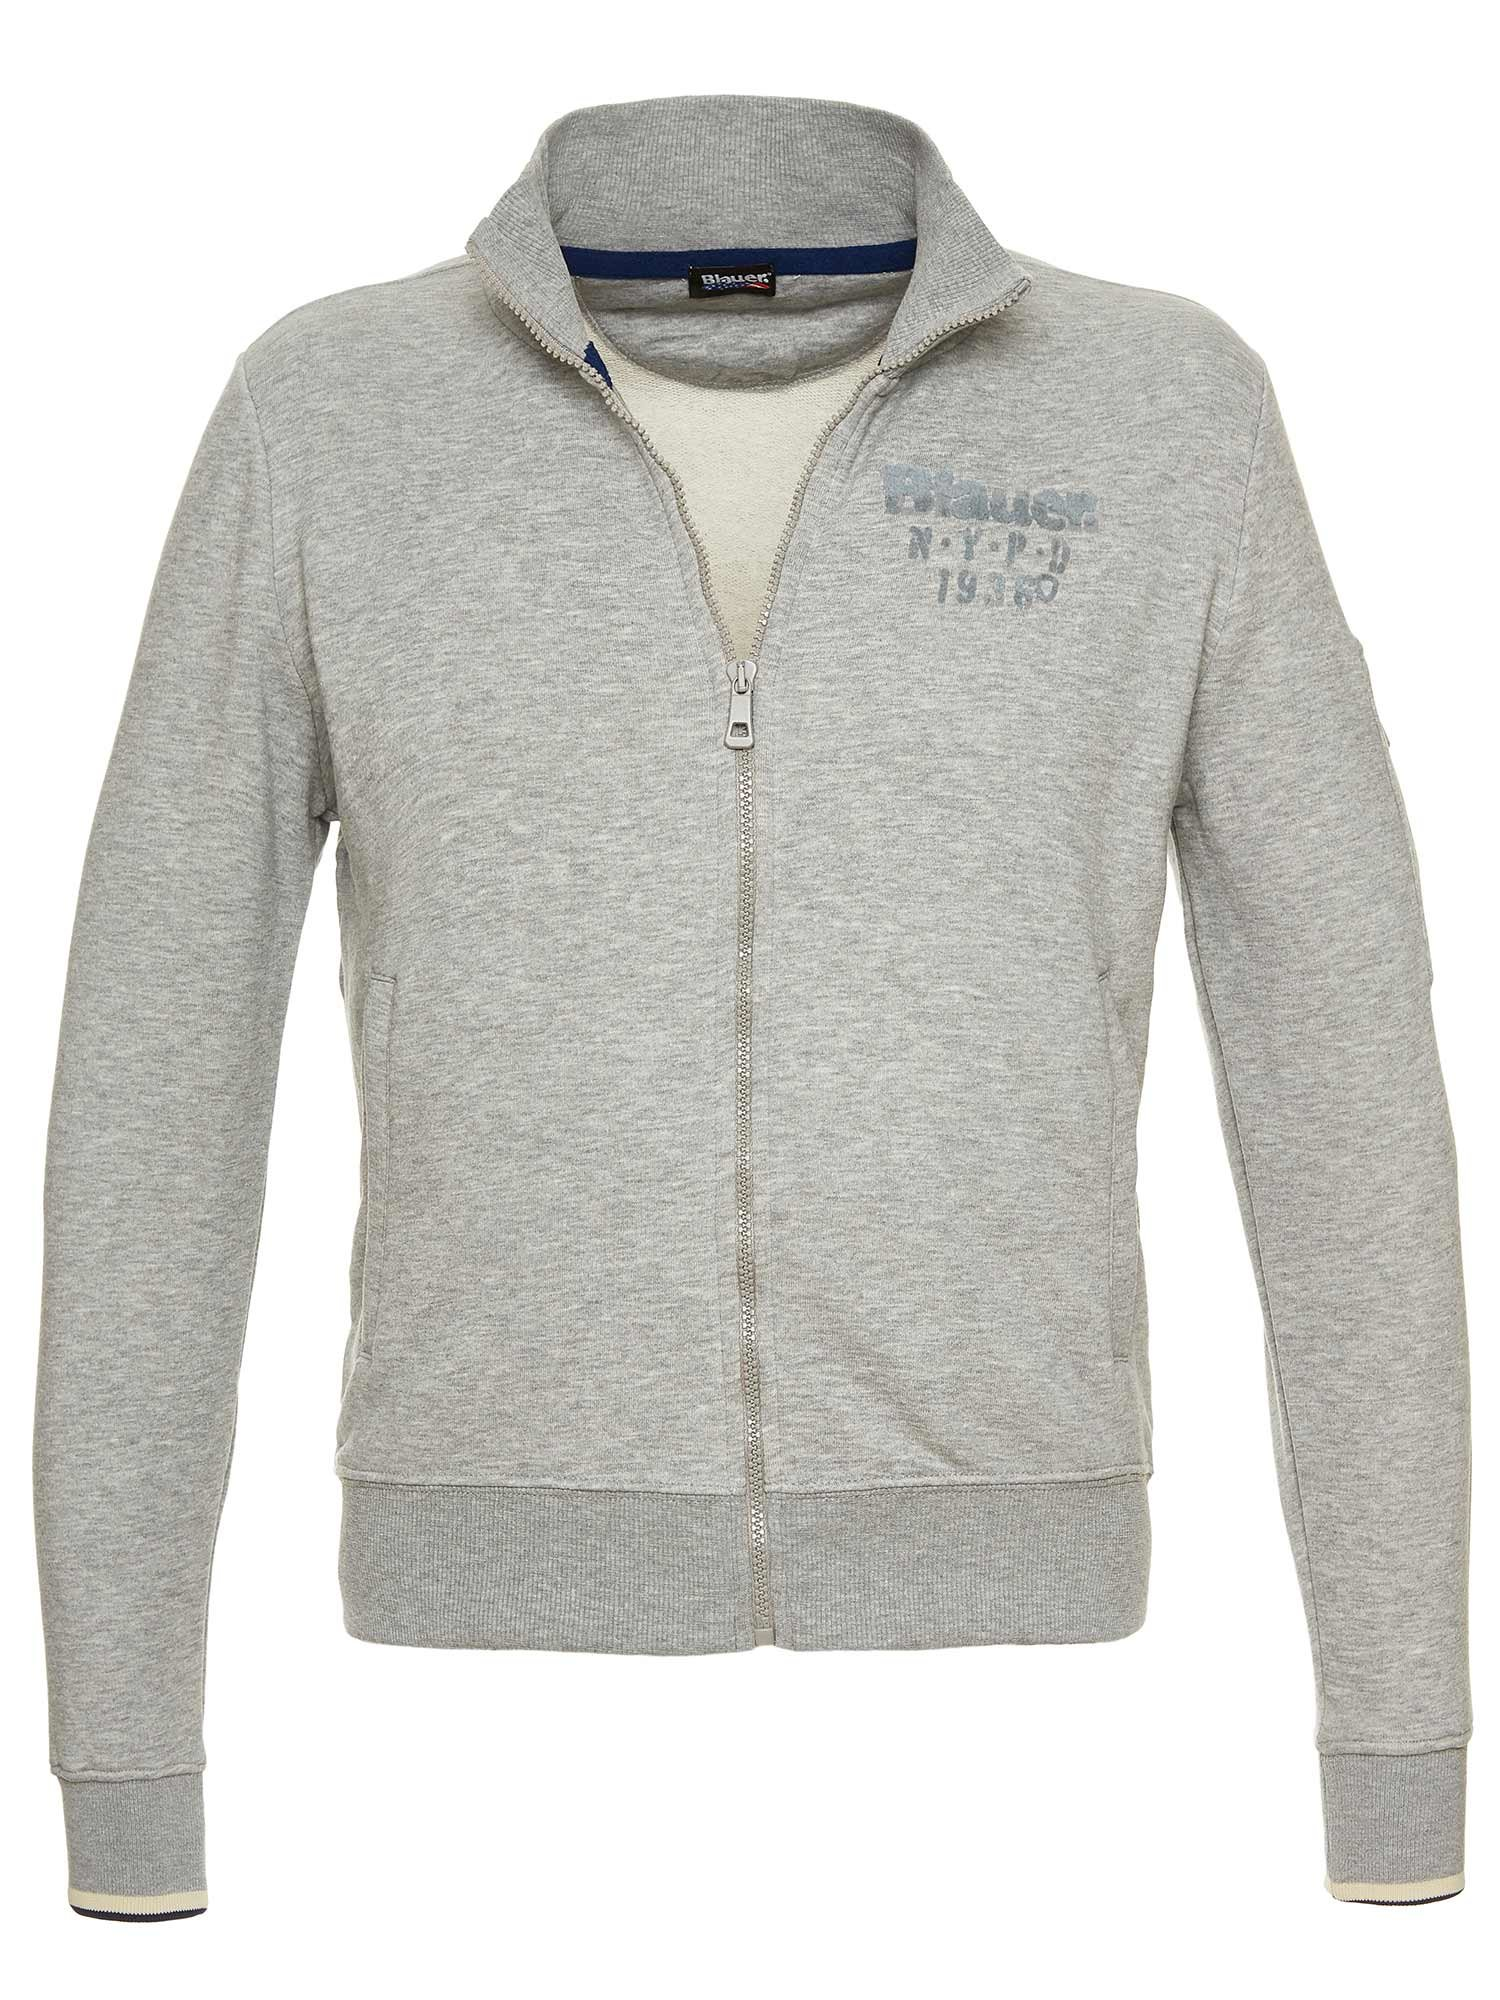 Blauer - FELPA N.Y.P.D. - Light Grey - Blauer